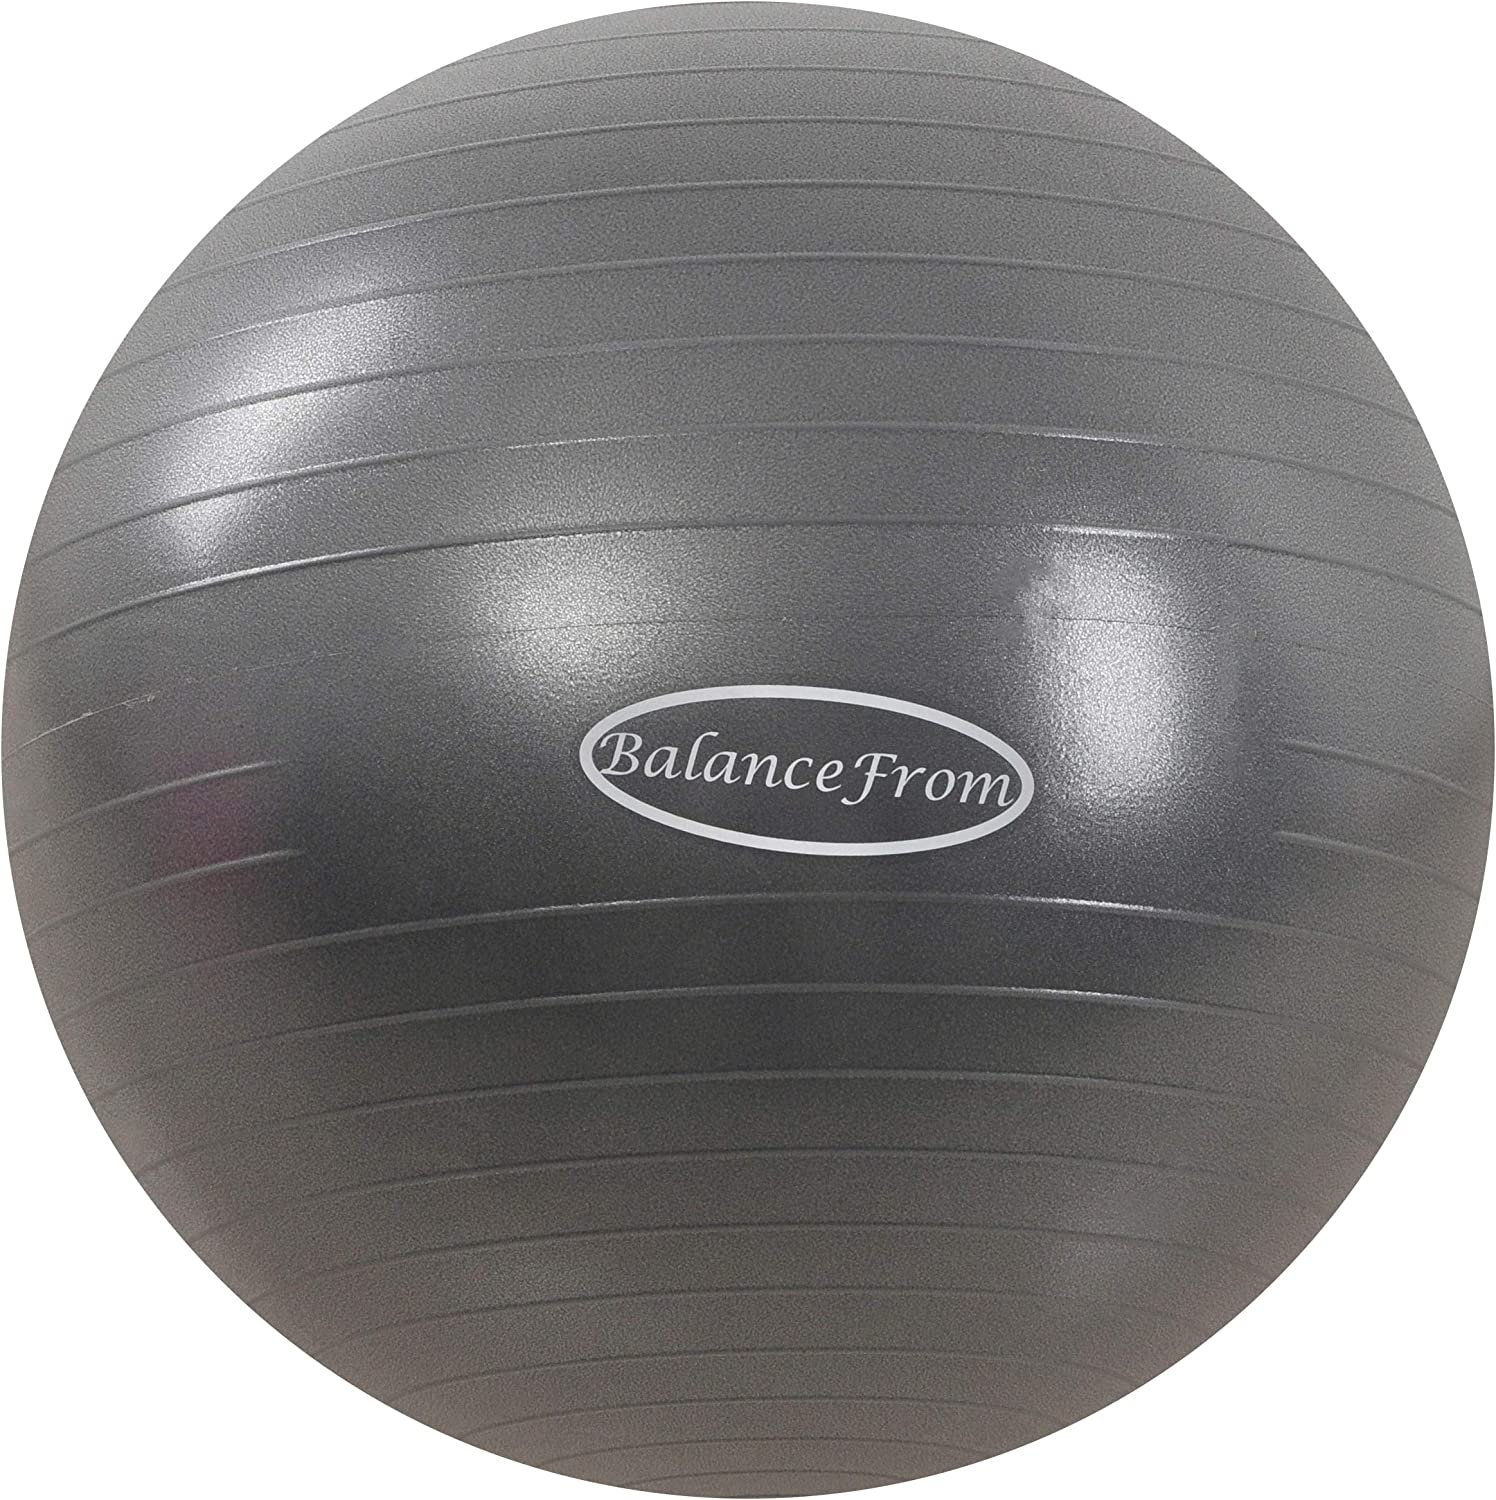 BalanceFrom Anti-Burst and Slip Resistant Exercise Ball Yoga Ball Fitness Ball Birthing Ball with Quick Pump, 2,000-Pound Capacity (78-85cm, XXL, Gray): Sports & Outdoors